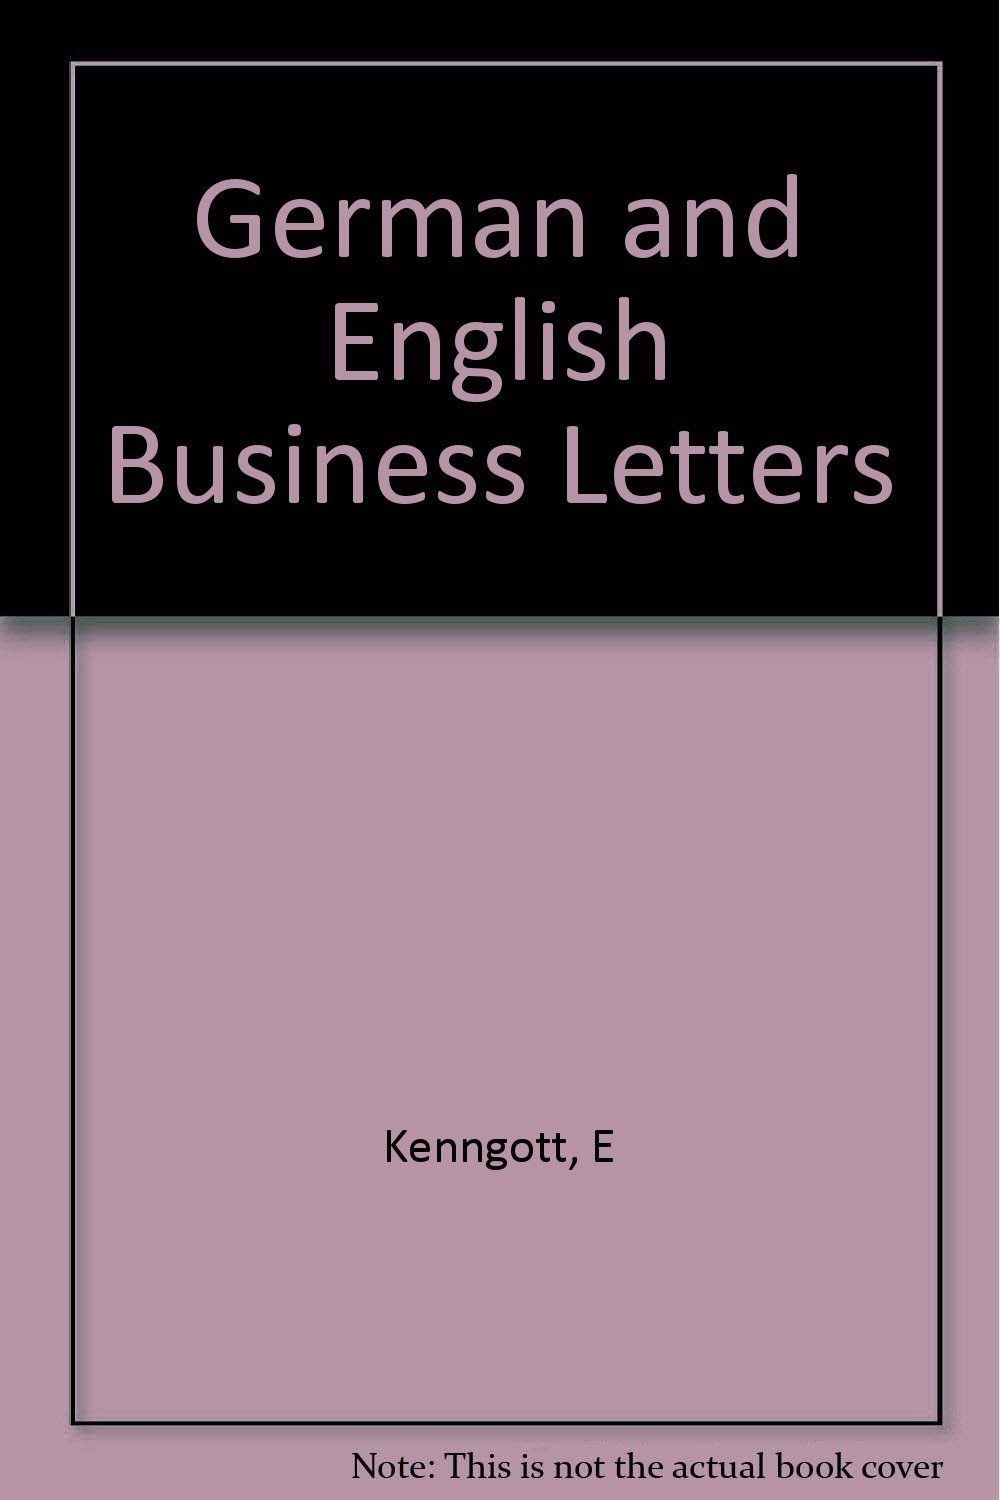 German And English Business Letters E Kenngott Amazon Com Books